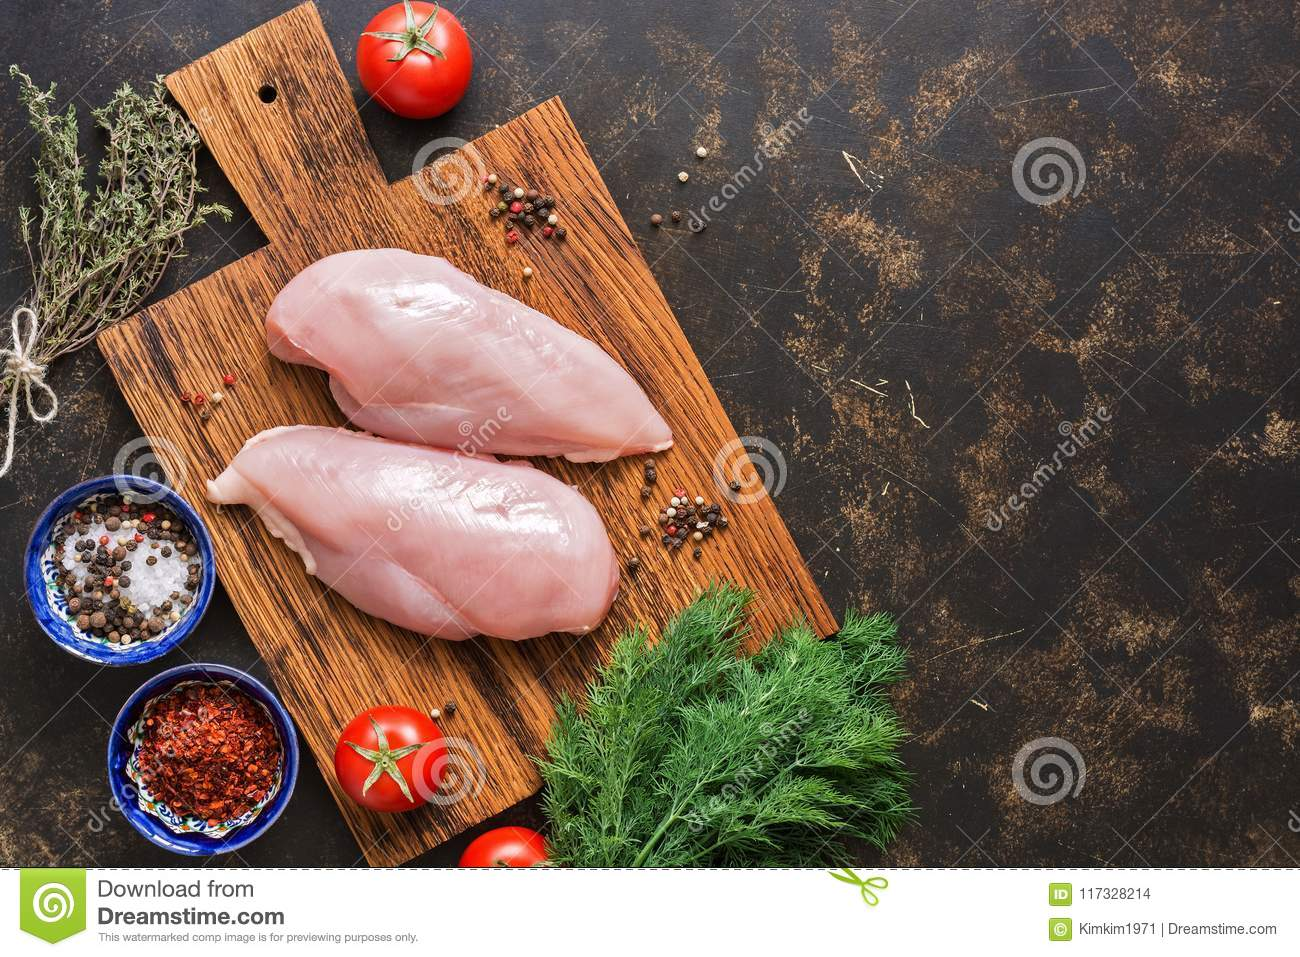 Raw chicken fillet on a cutting board with spices on a dark background. Top view, copy space, flat lay.